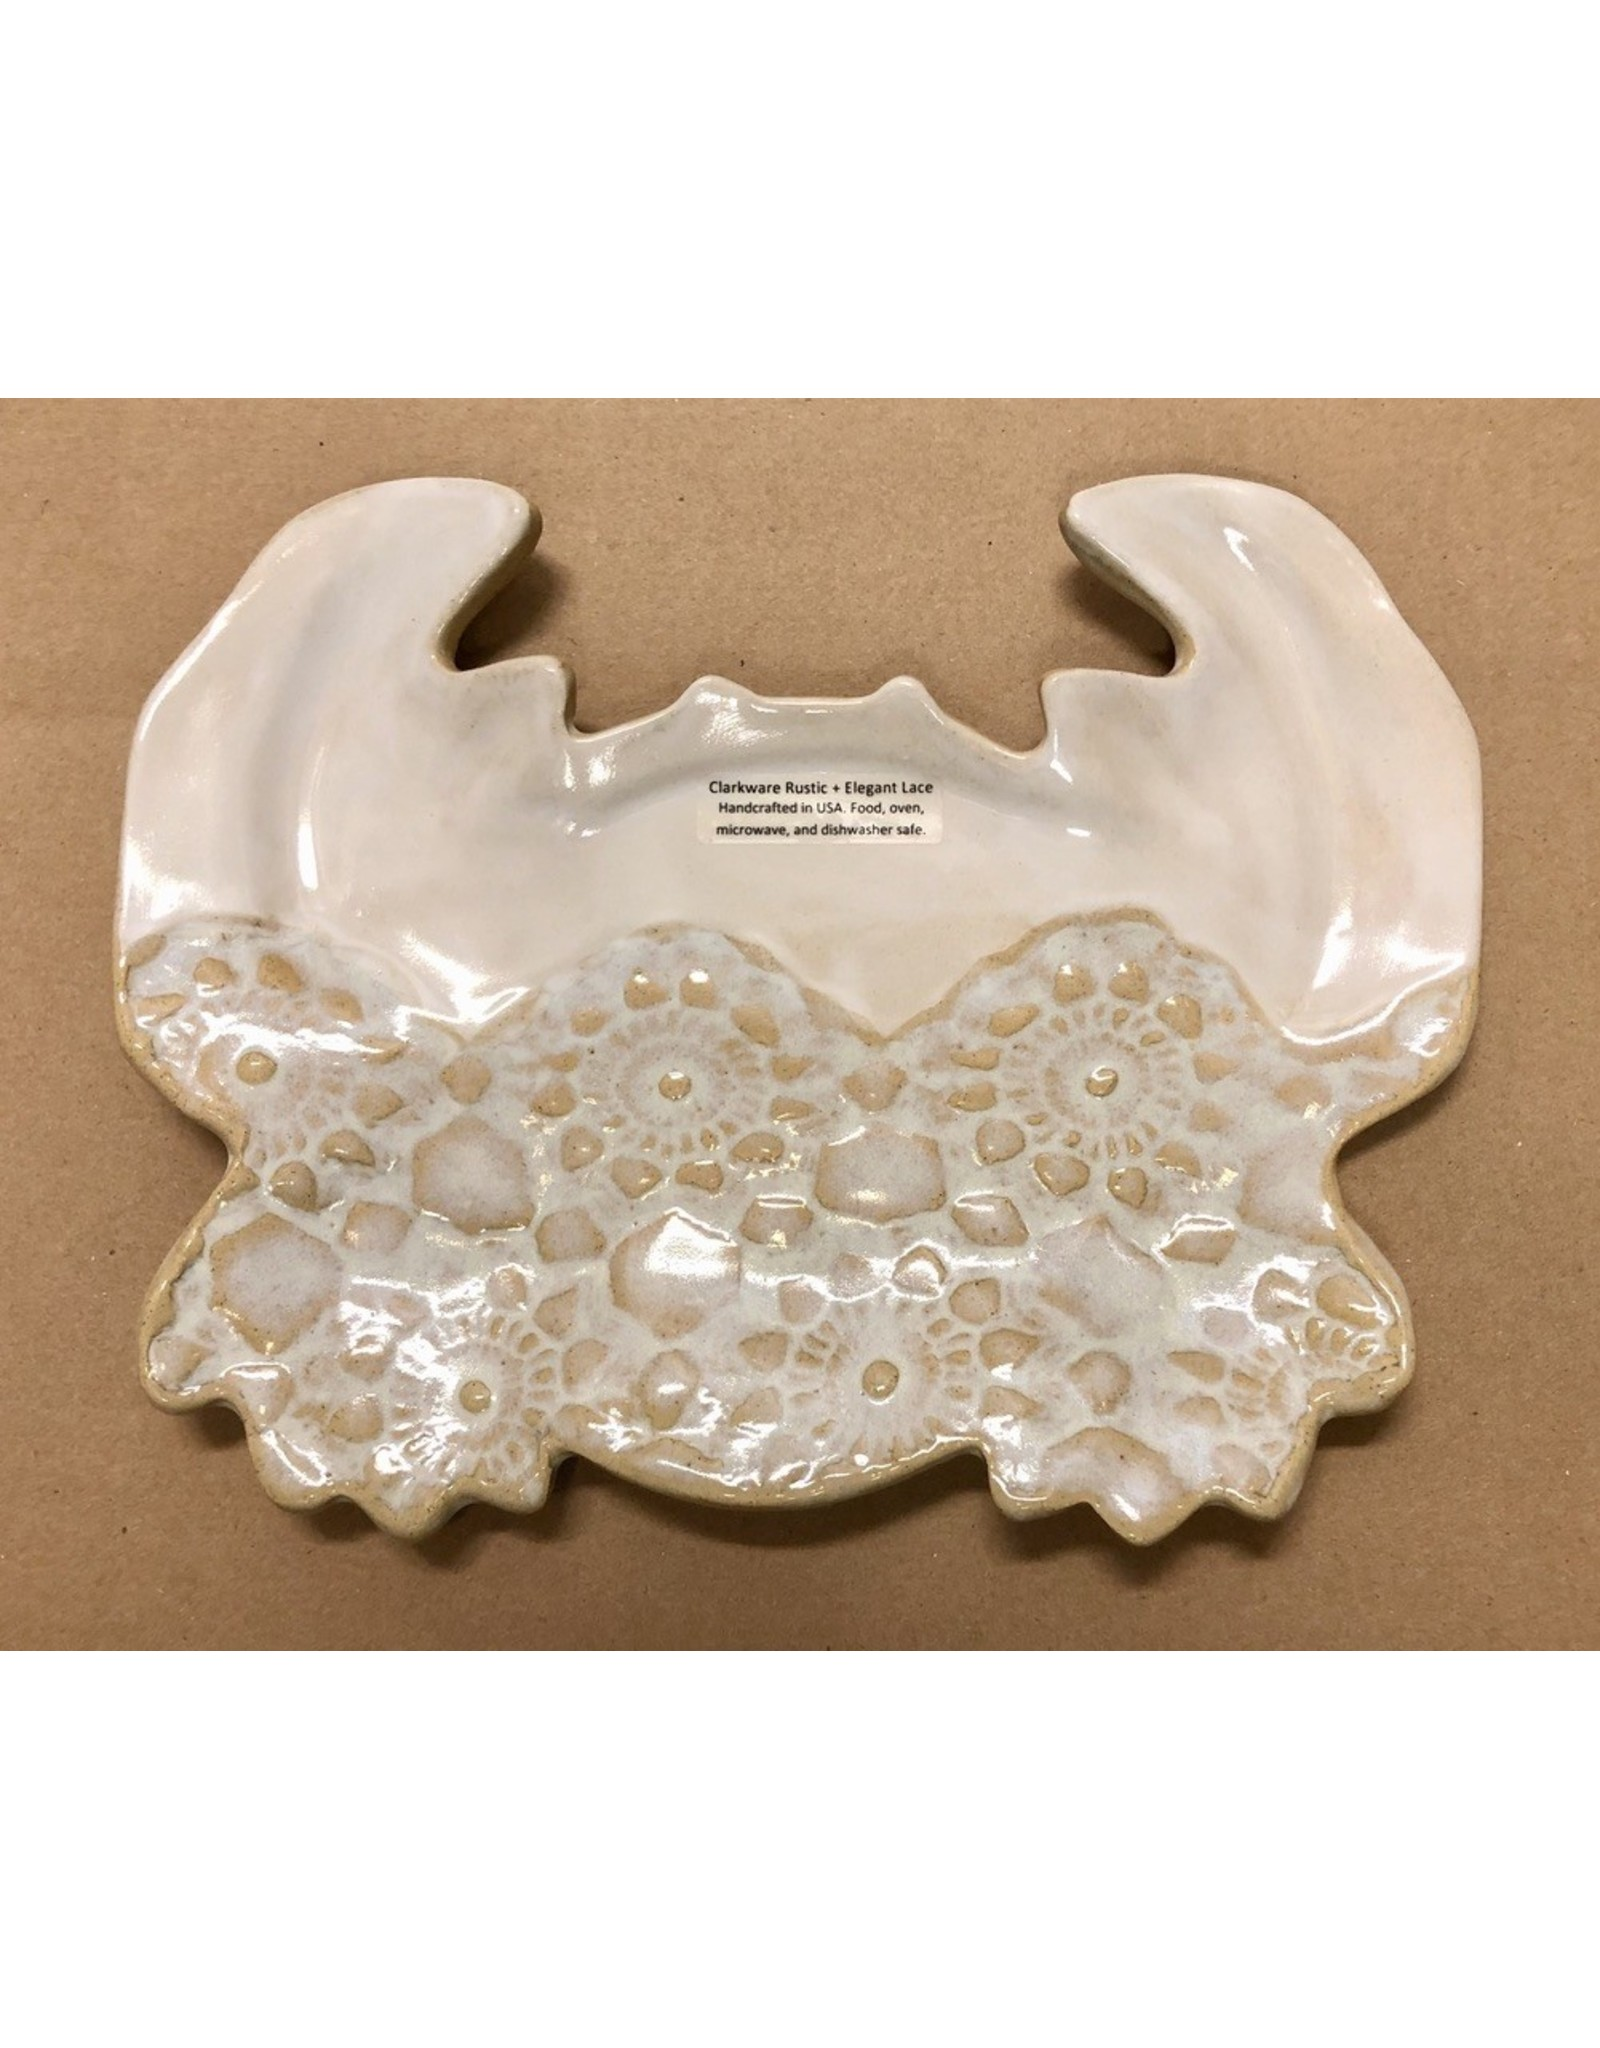 Clarkware Pottery CRAB TRAY